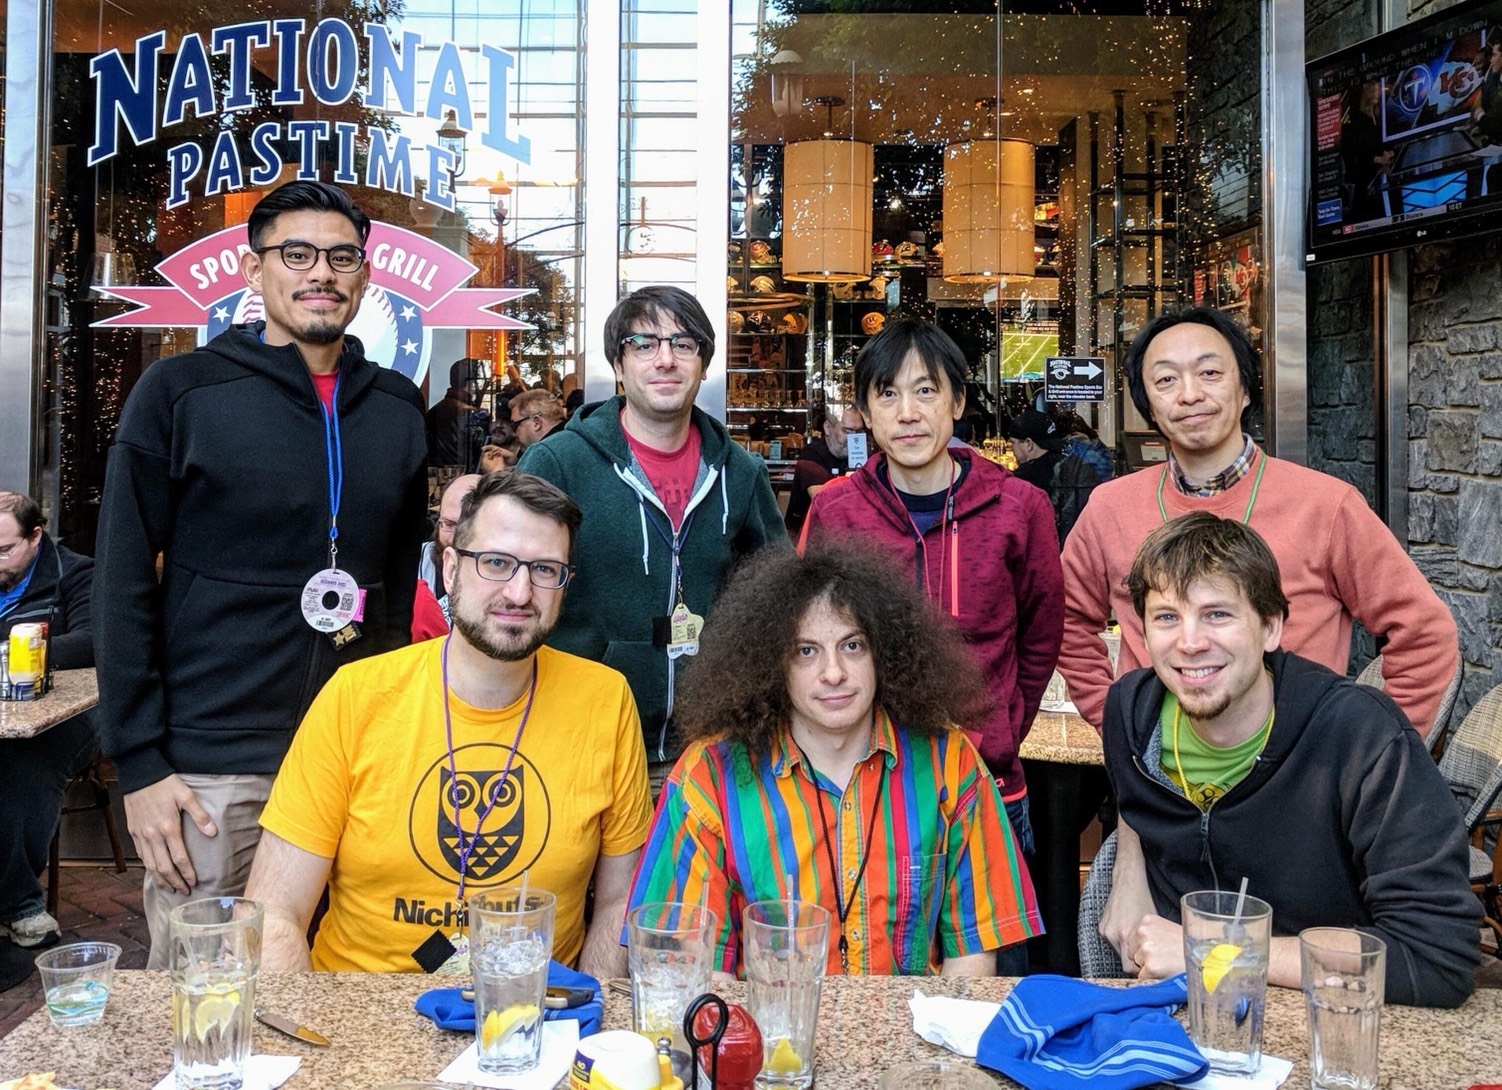 From top left: Brave Wave's BizDev Alexander Aniel, Kev Ragone (of Cheap Dinosaurs), Ninja Gaiden composer Keiji Yamagishi, Ninja Gaiden director Hideo Yoshizawa. Bottom left: Steve 'ap0c' Lakawicsz, Dino Lionetti (of Cheap Dinosaurs), Grant 'Stemage' Henry (of Metroid Metal).